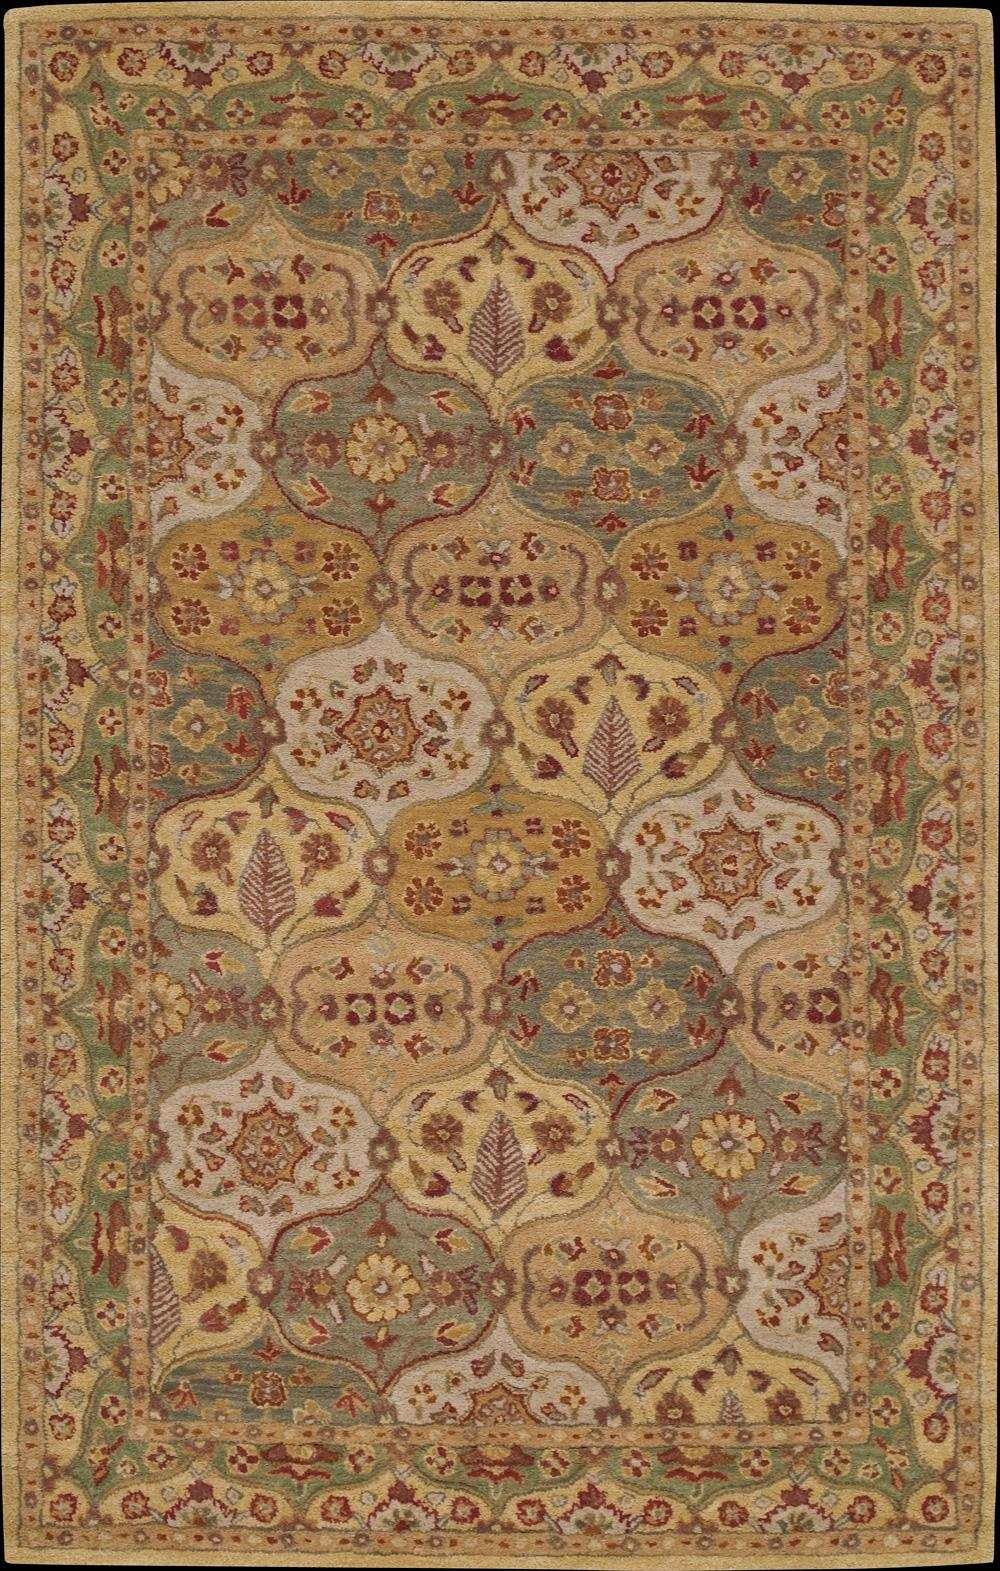 "Nourison India House Area Rug 3'6"" x 5'6"" - Item Number: 11185"